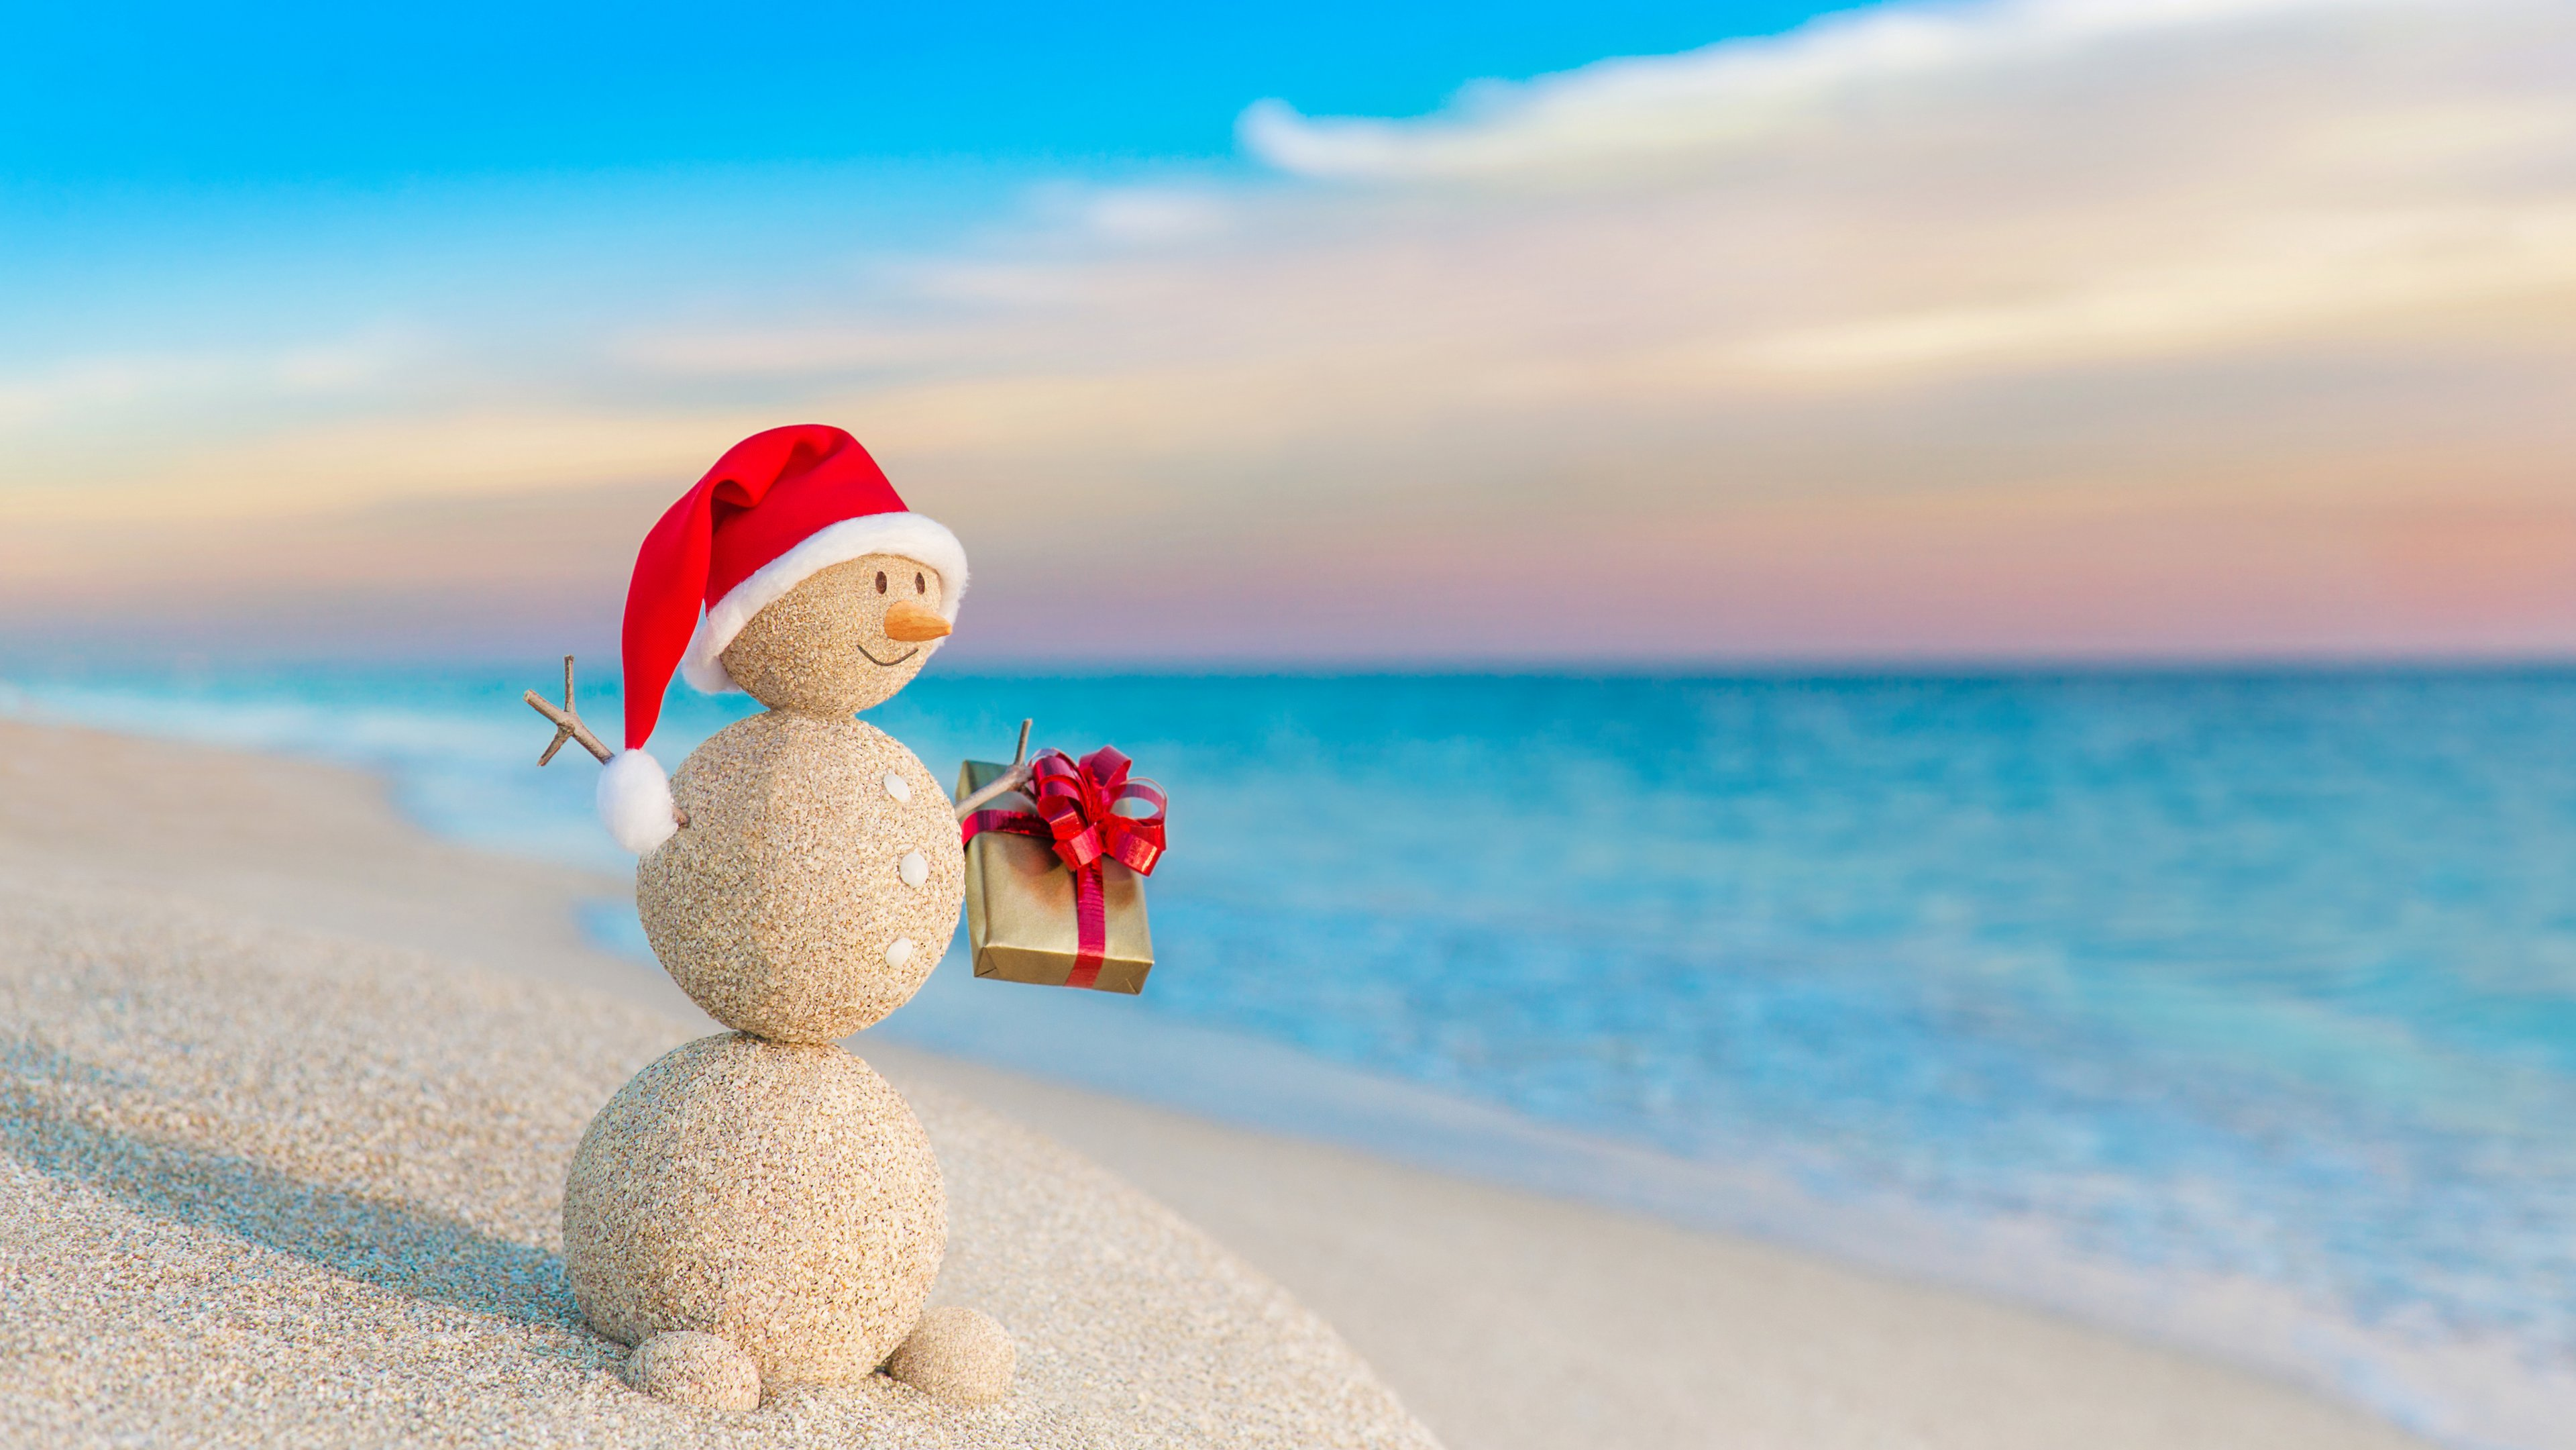 Christmas Snowman With Gift At Beach Wallpaper 4k Beach Christmas 2446604 Hd Wallpaper Backgrounds Download